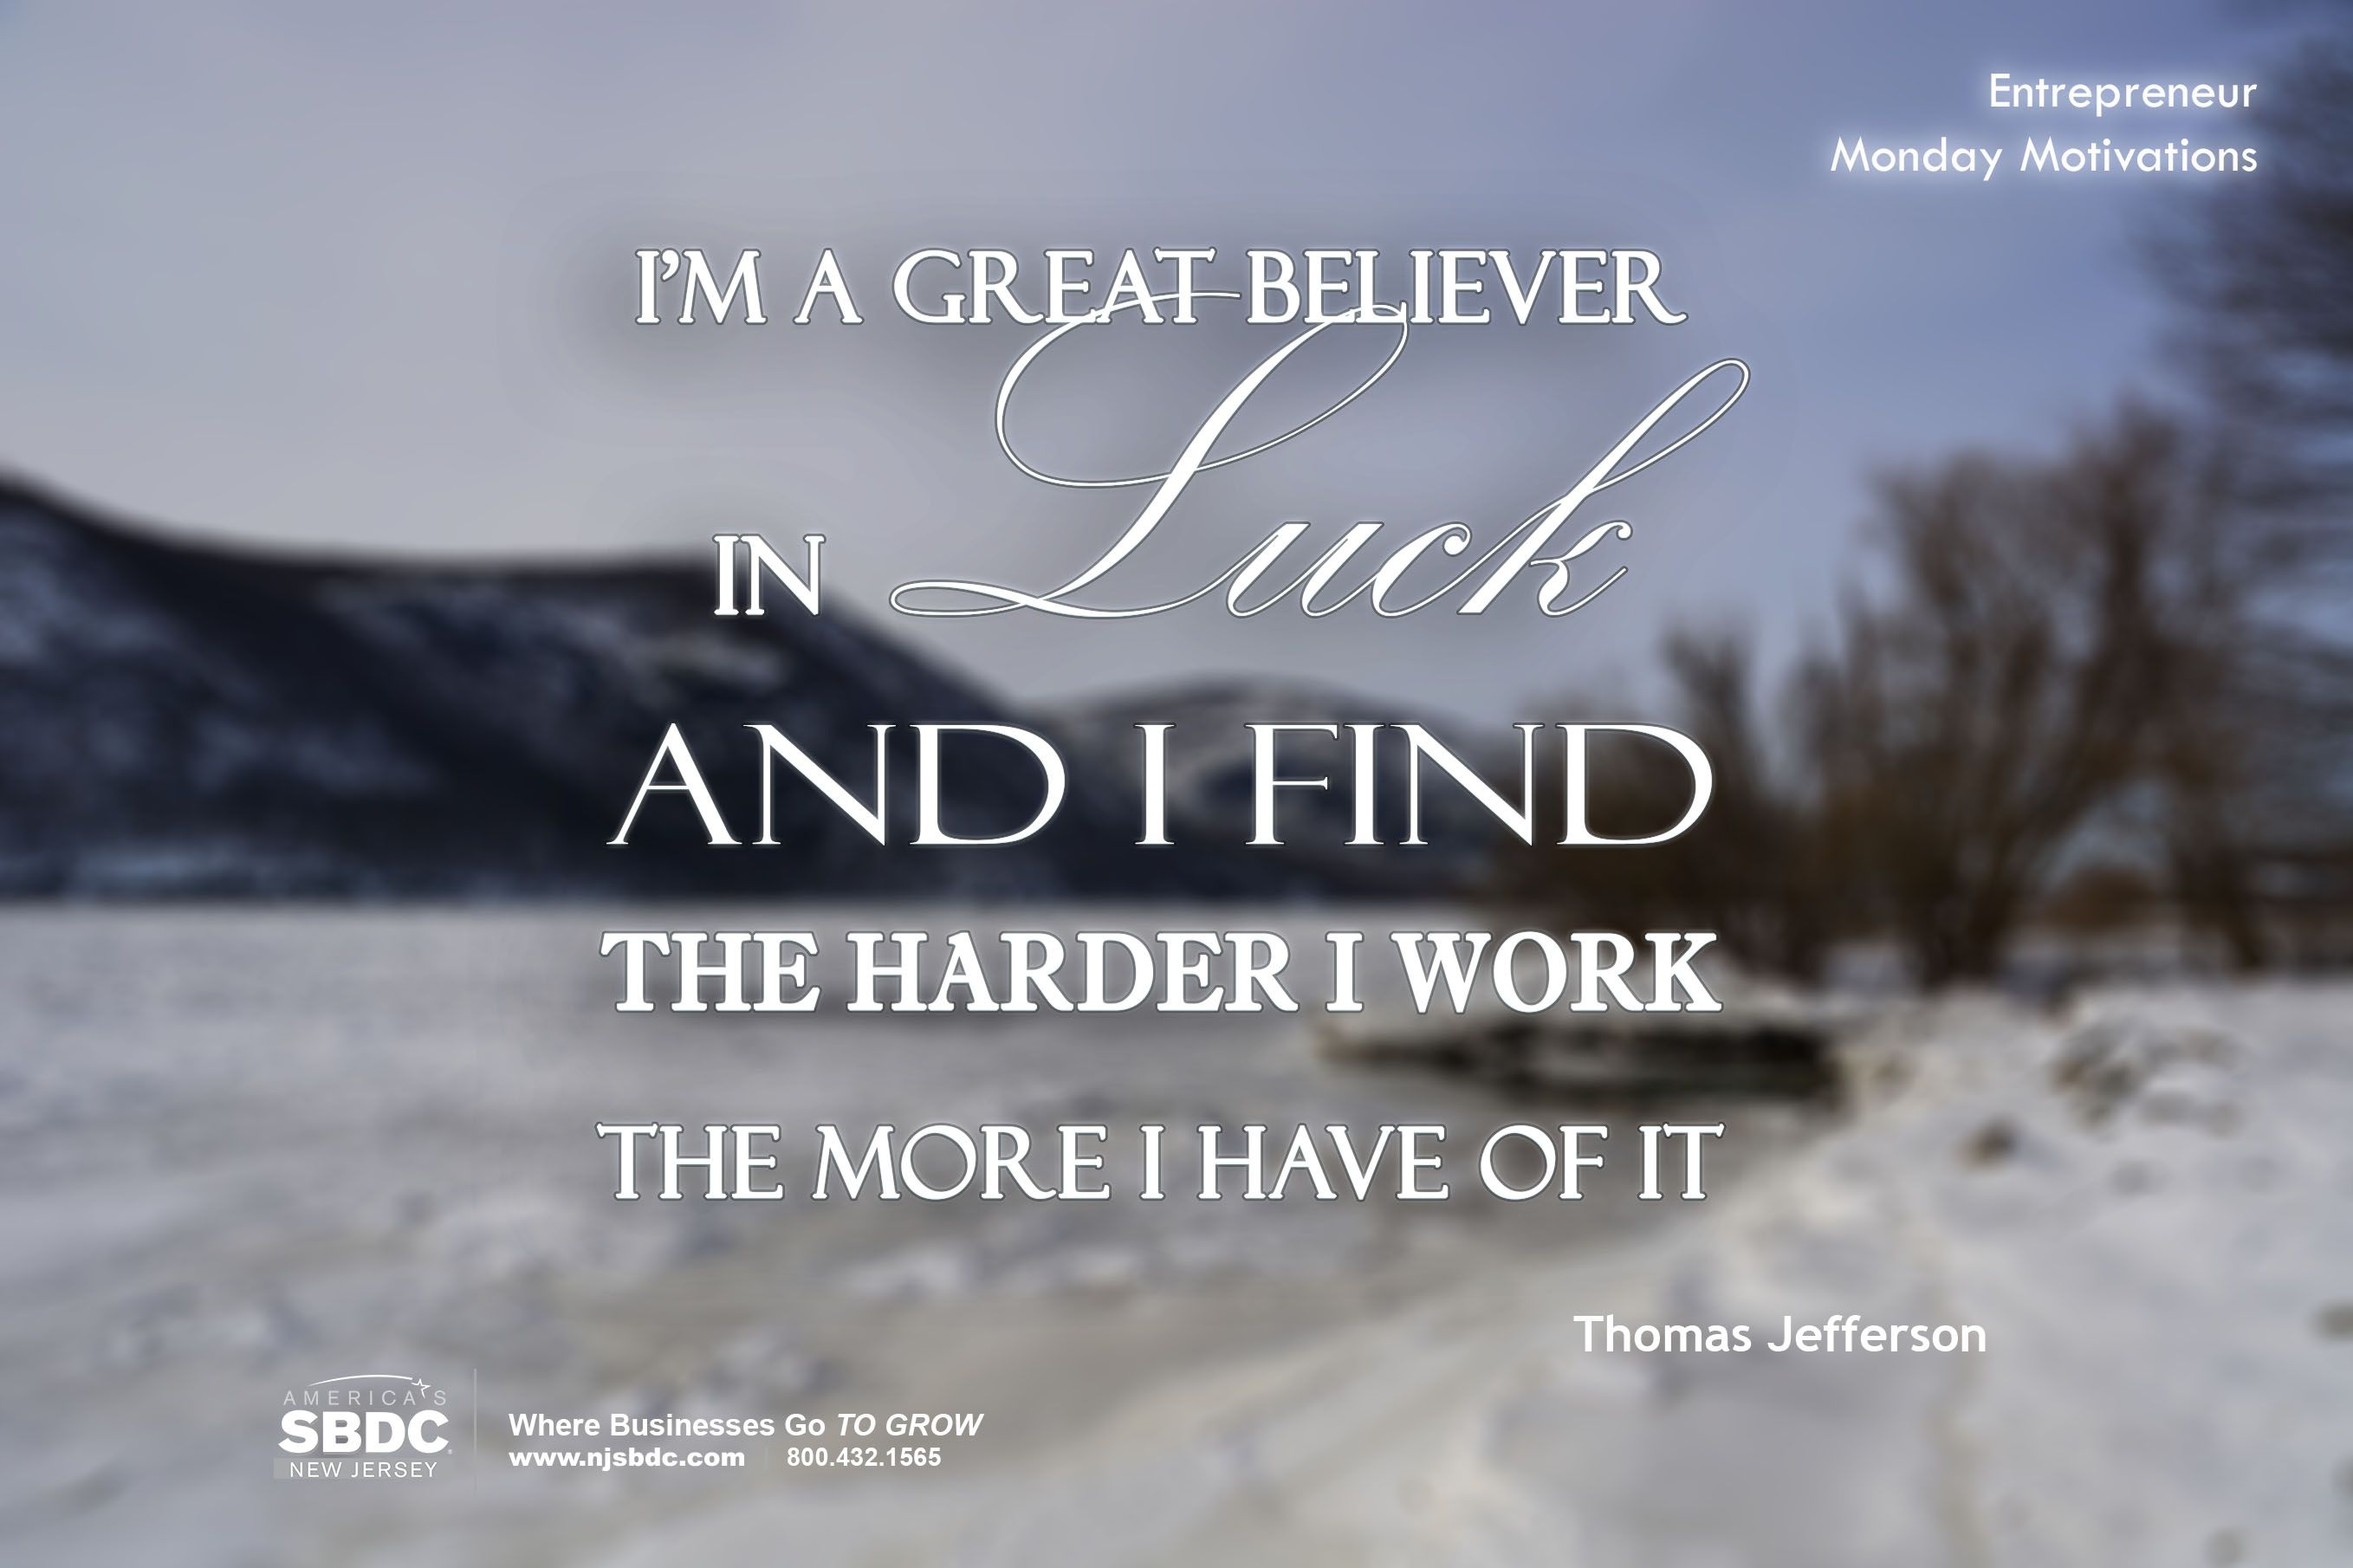 Motivational Quote IMAGE - great believer (thomas jefferson)